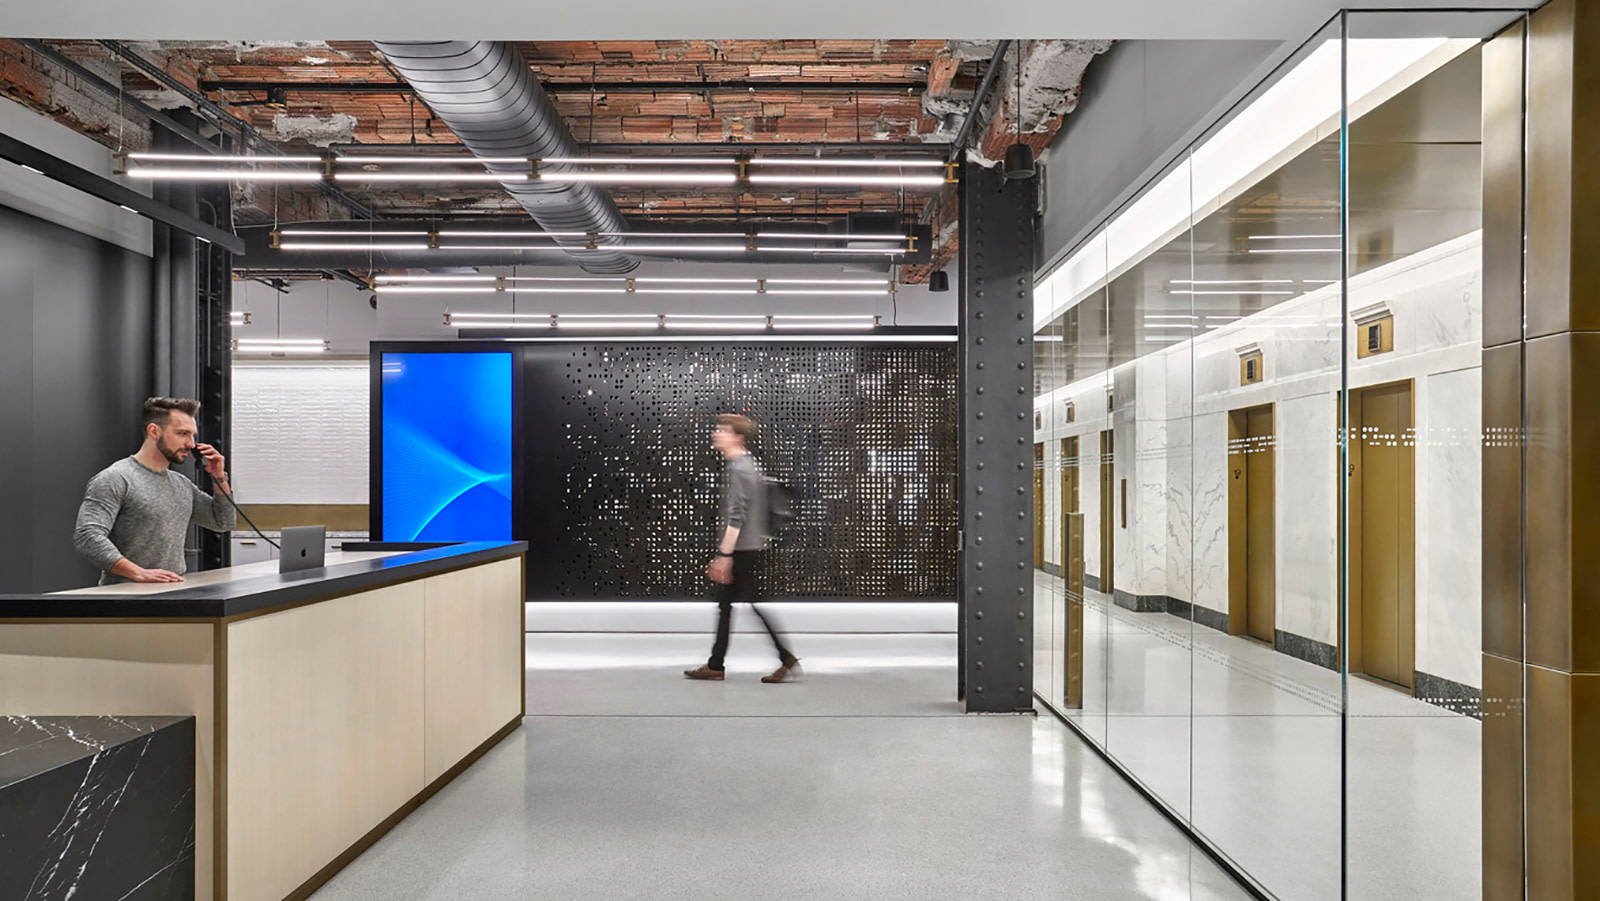 A high-tech reception area at a New York City workspace.